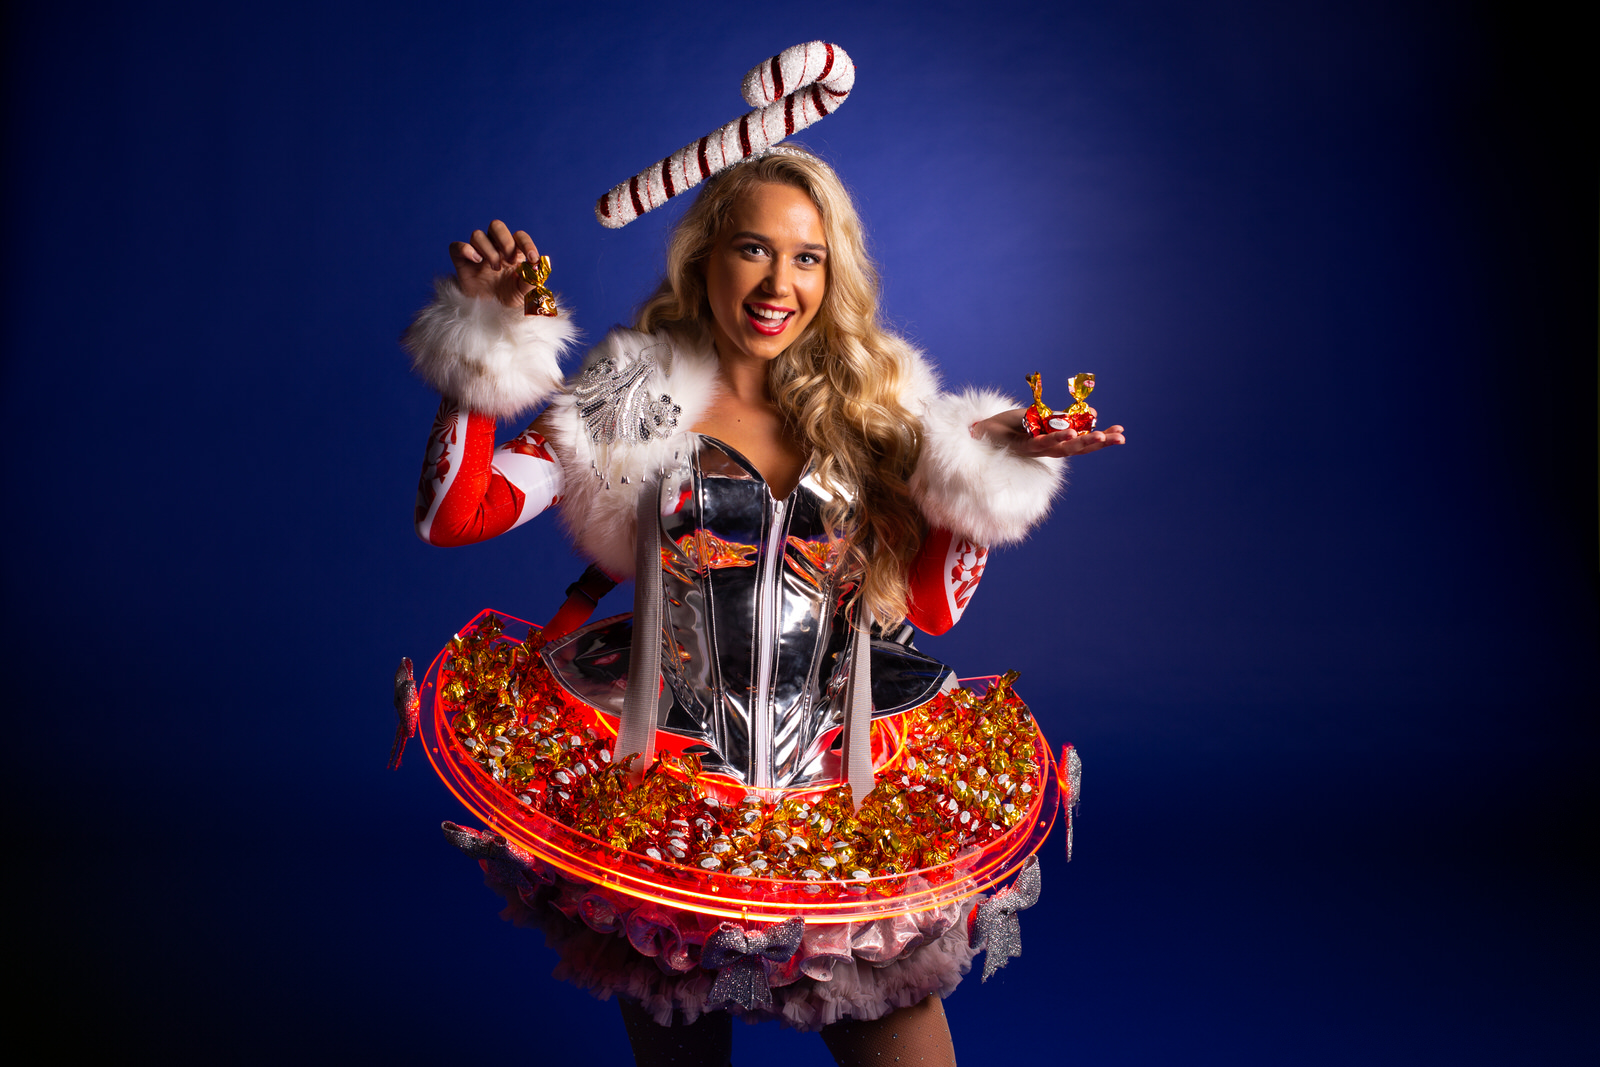 Candy Girl, Winterse Candy dame, Candy Girls, Gasten ontvangt, Food entertainment, Catering act, Chocolate Girls, Chocolade dames, Cadeau'tje, kado dame, complimenten dame, Kerst entertainment, Winter wonderland, event show, event entertainment,  unieke a